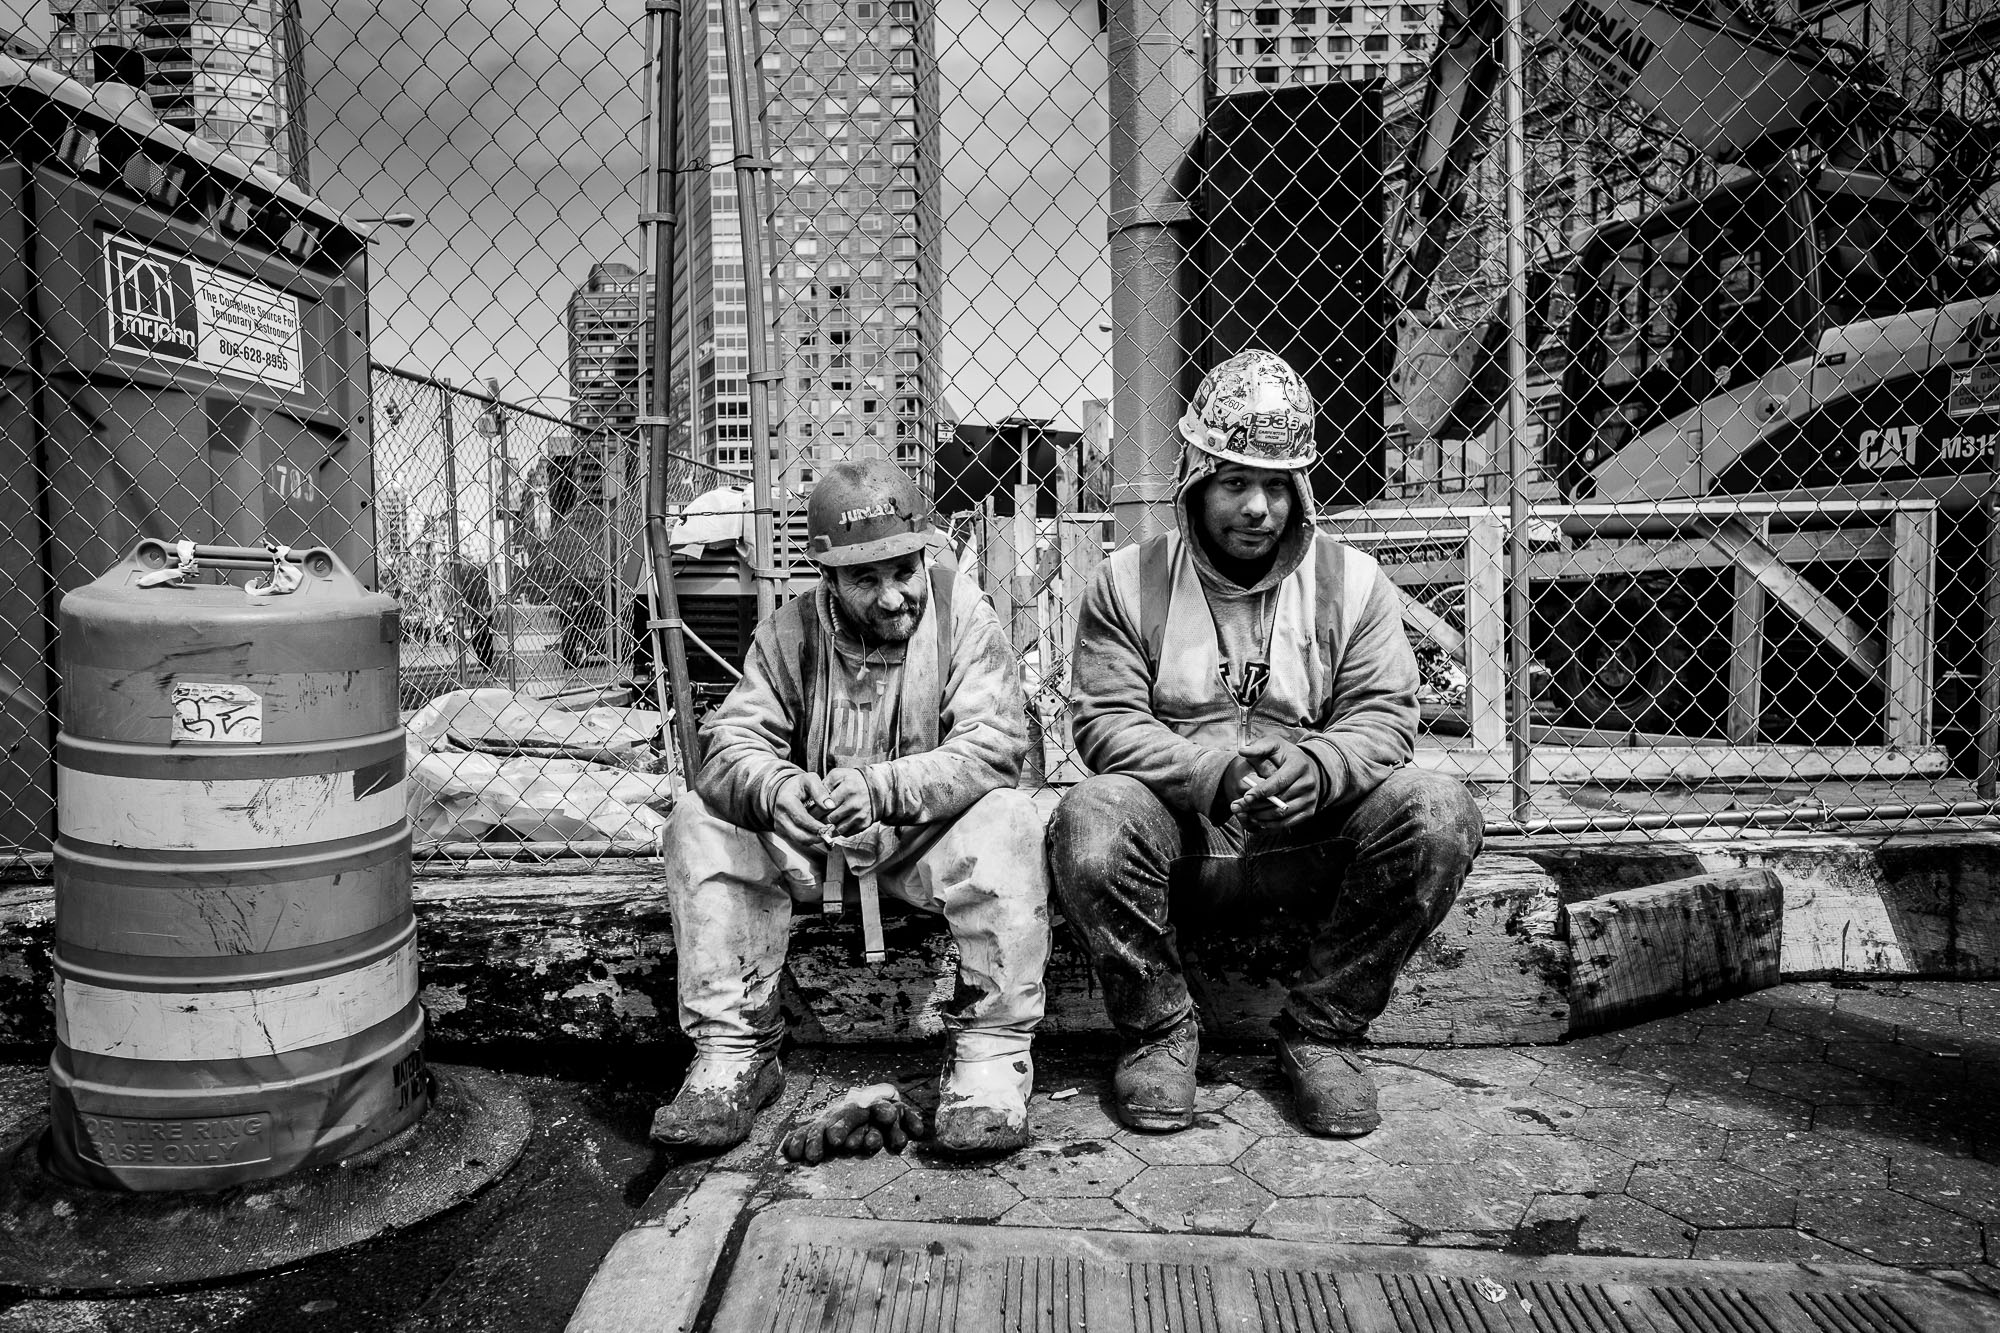 Two construction workers taking a break